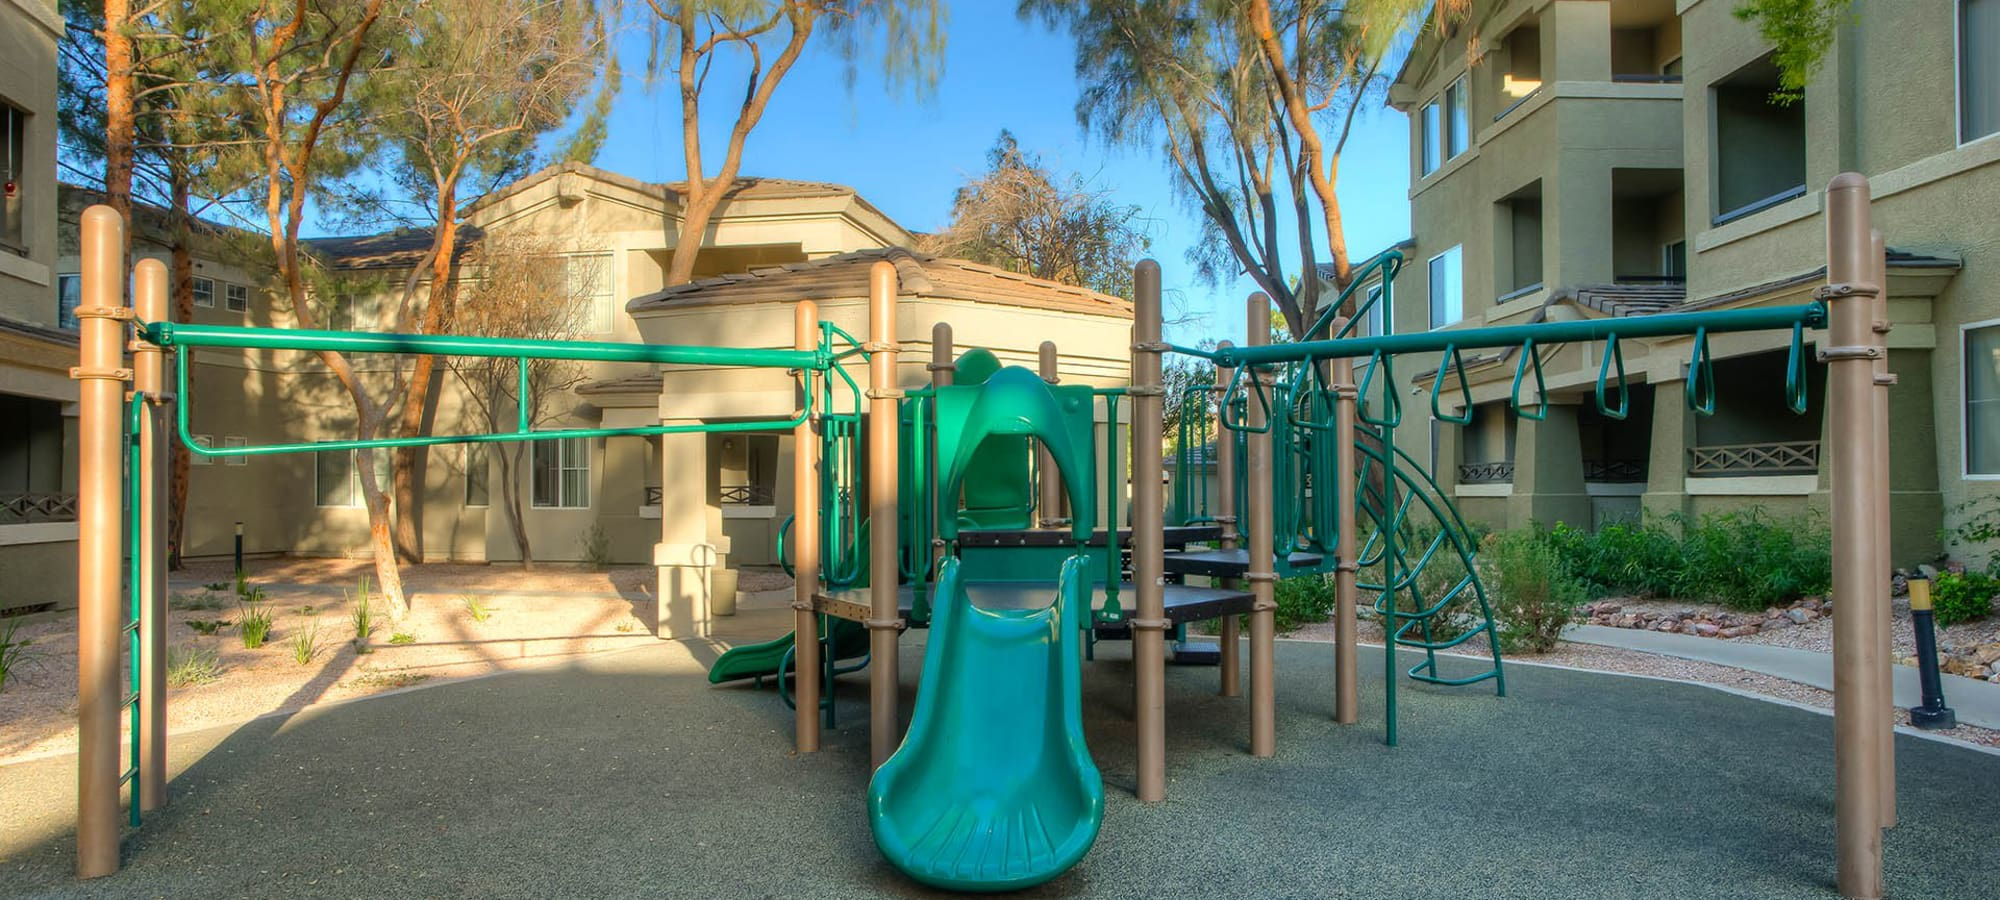 Playground area at The Reserve at Gilbert Towne Centre in Gilbert, Arizona